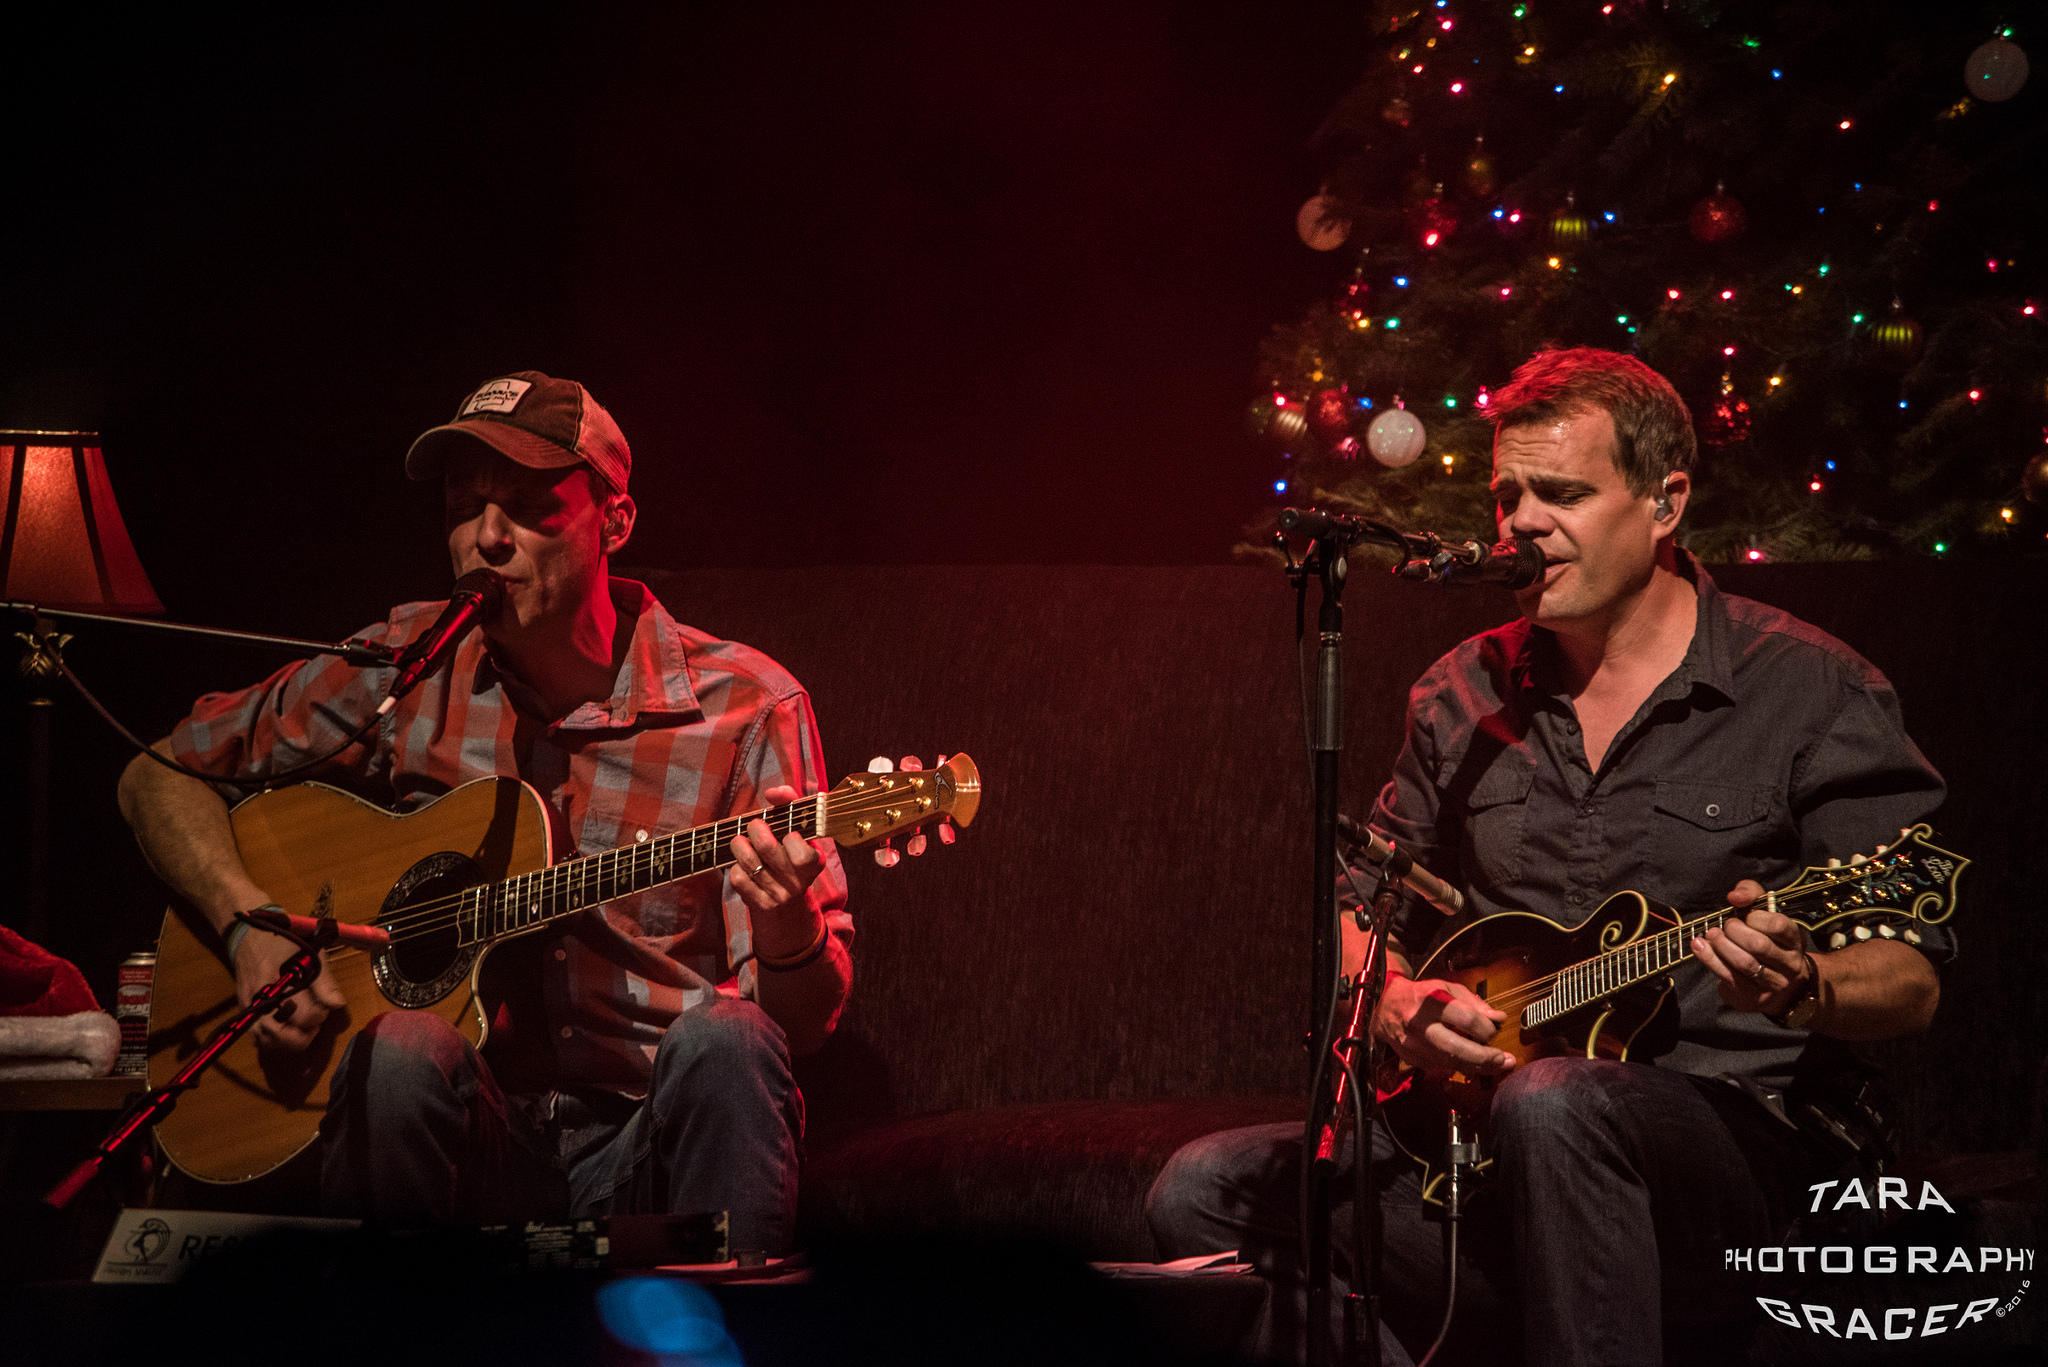 Review / Photos / Video | The Brendan & Jake Holiday Show @ Park West 12/10/16